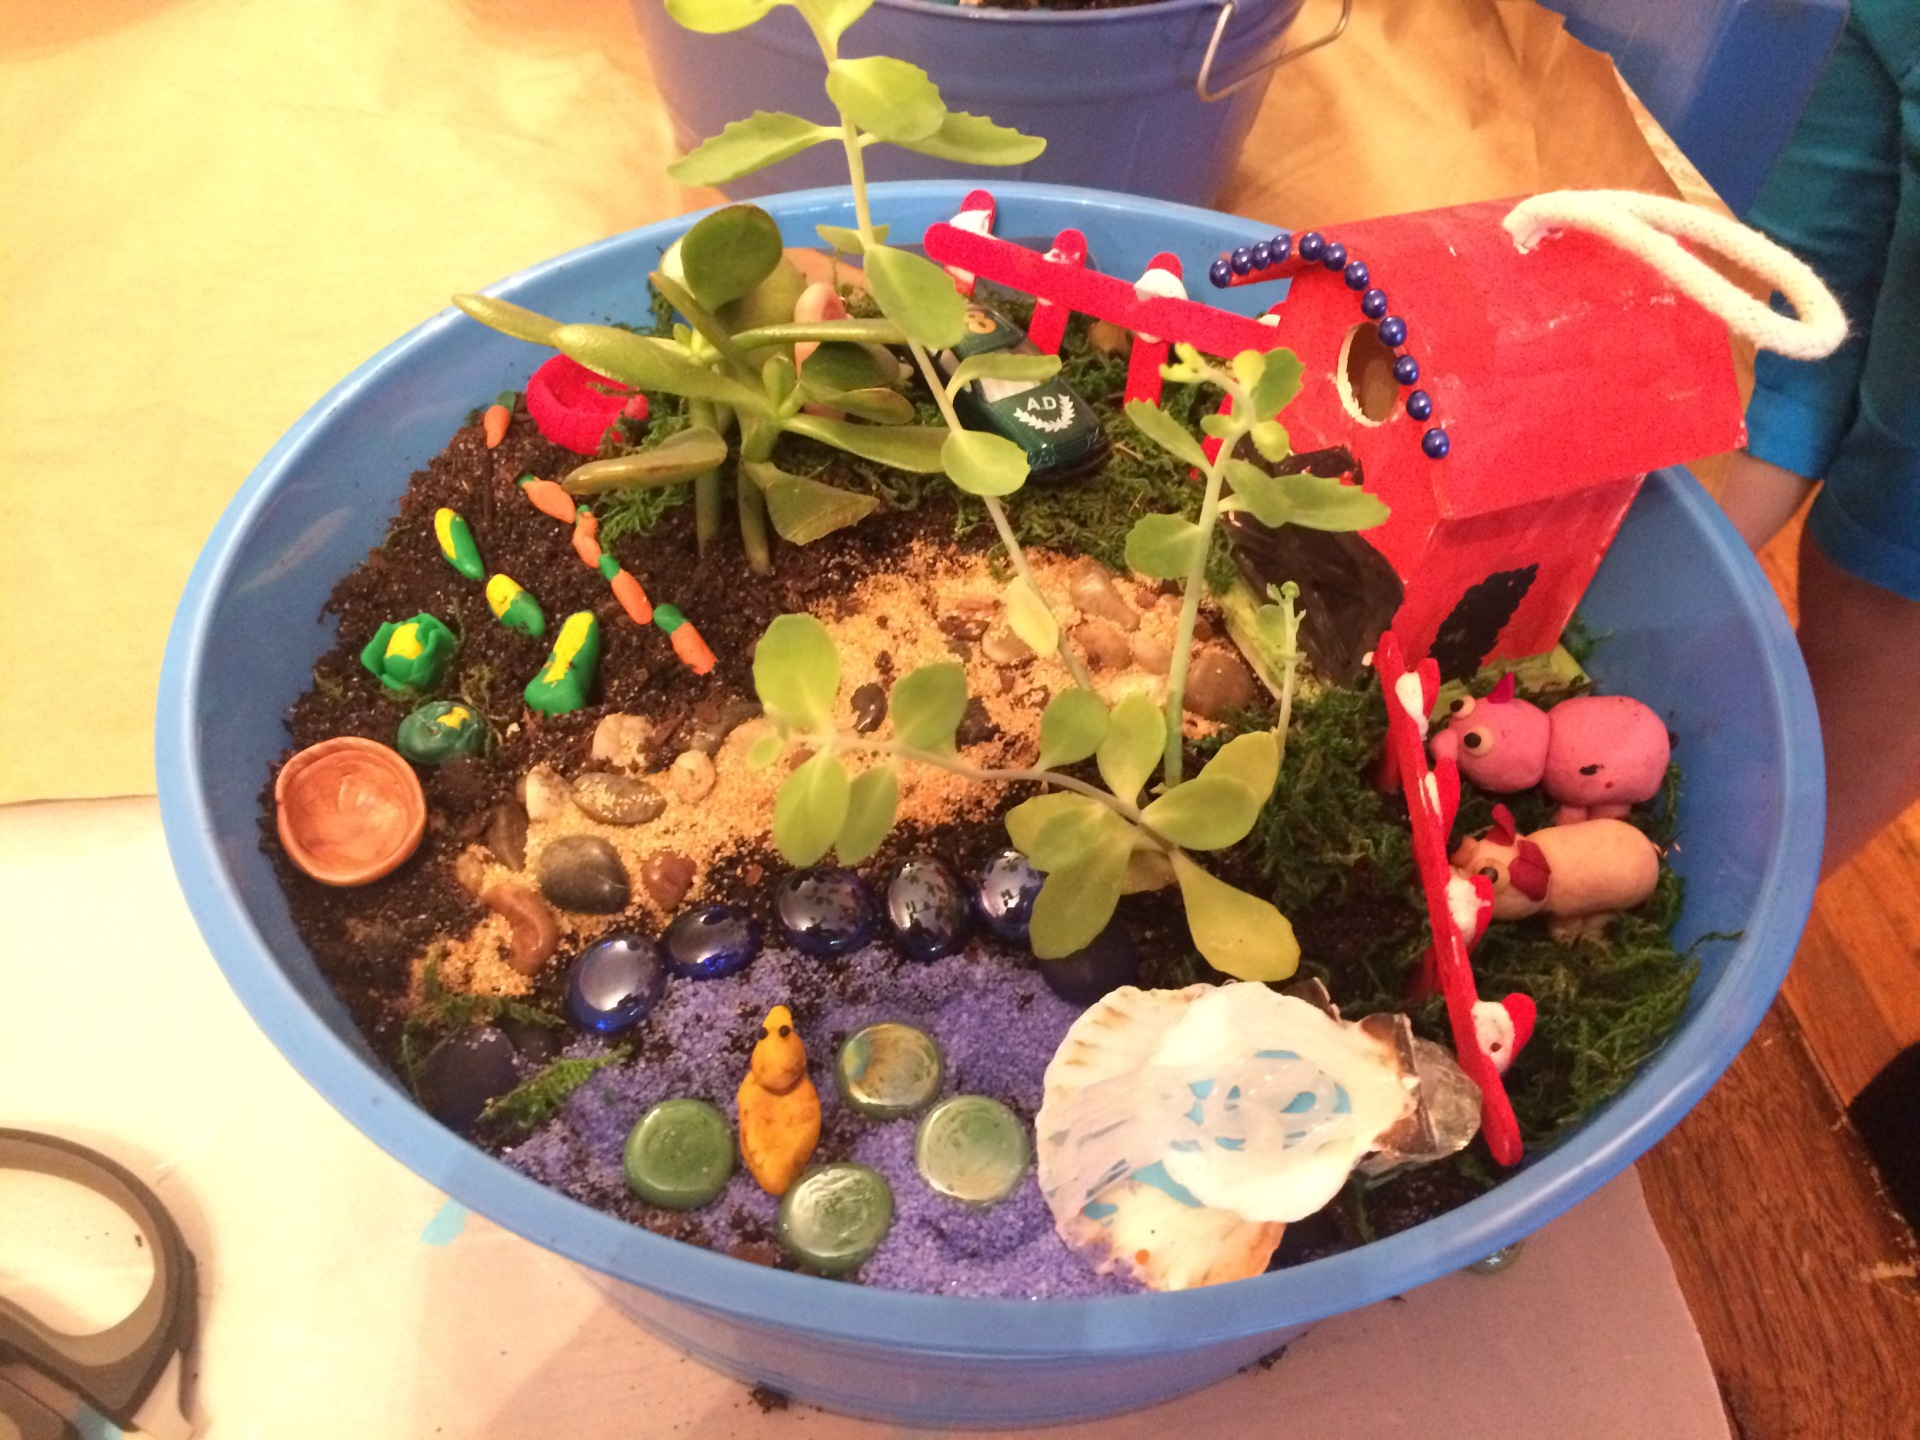 Artistic Imagination Gardens-Check out handmade clay miniatures!!!